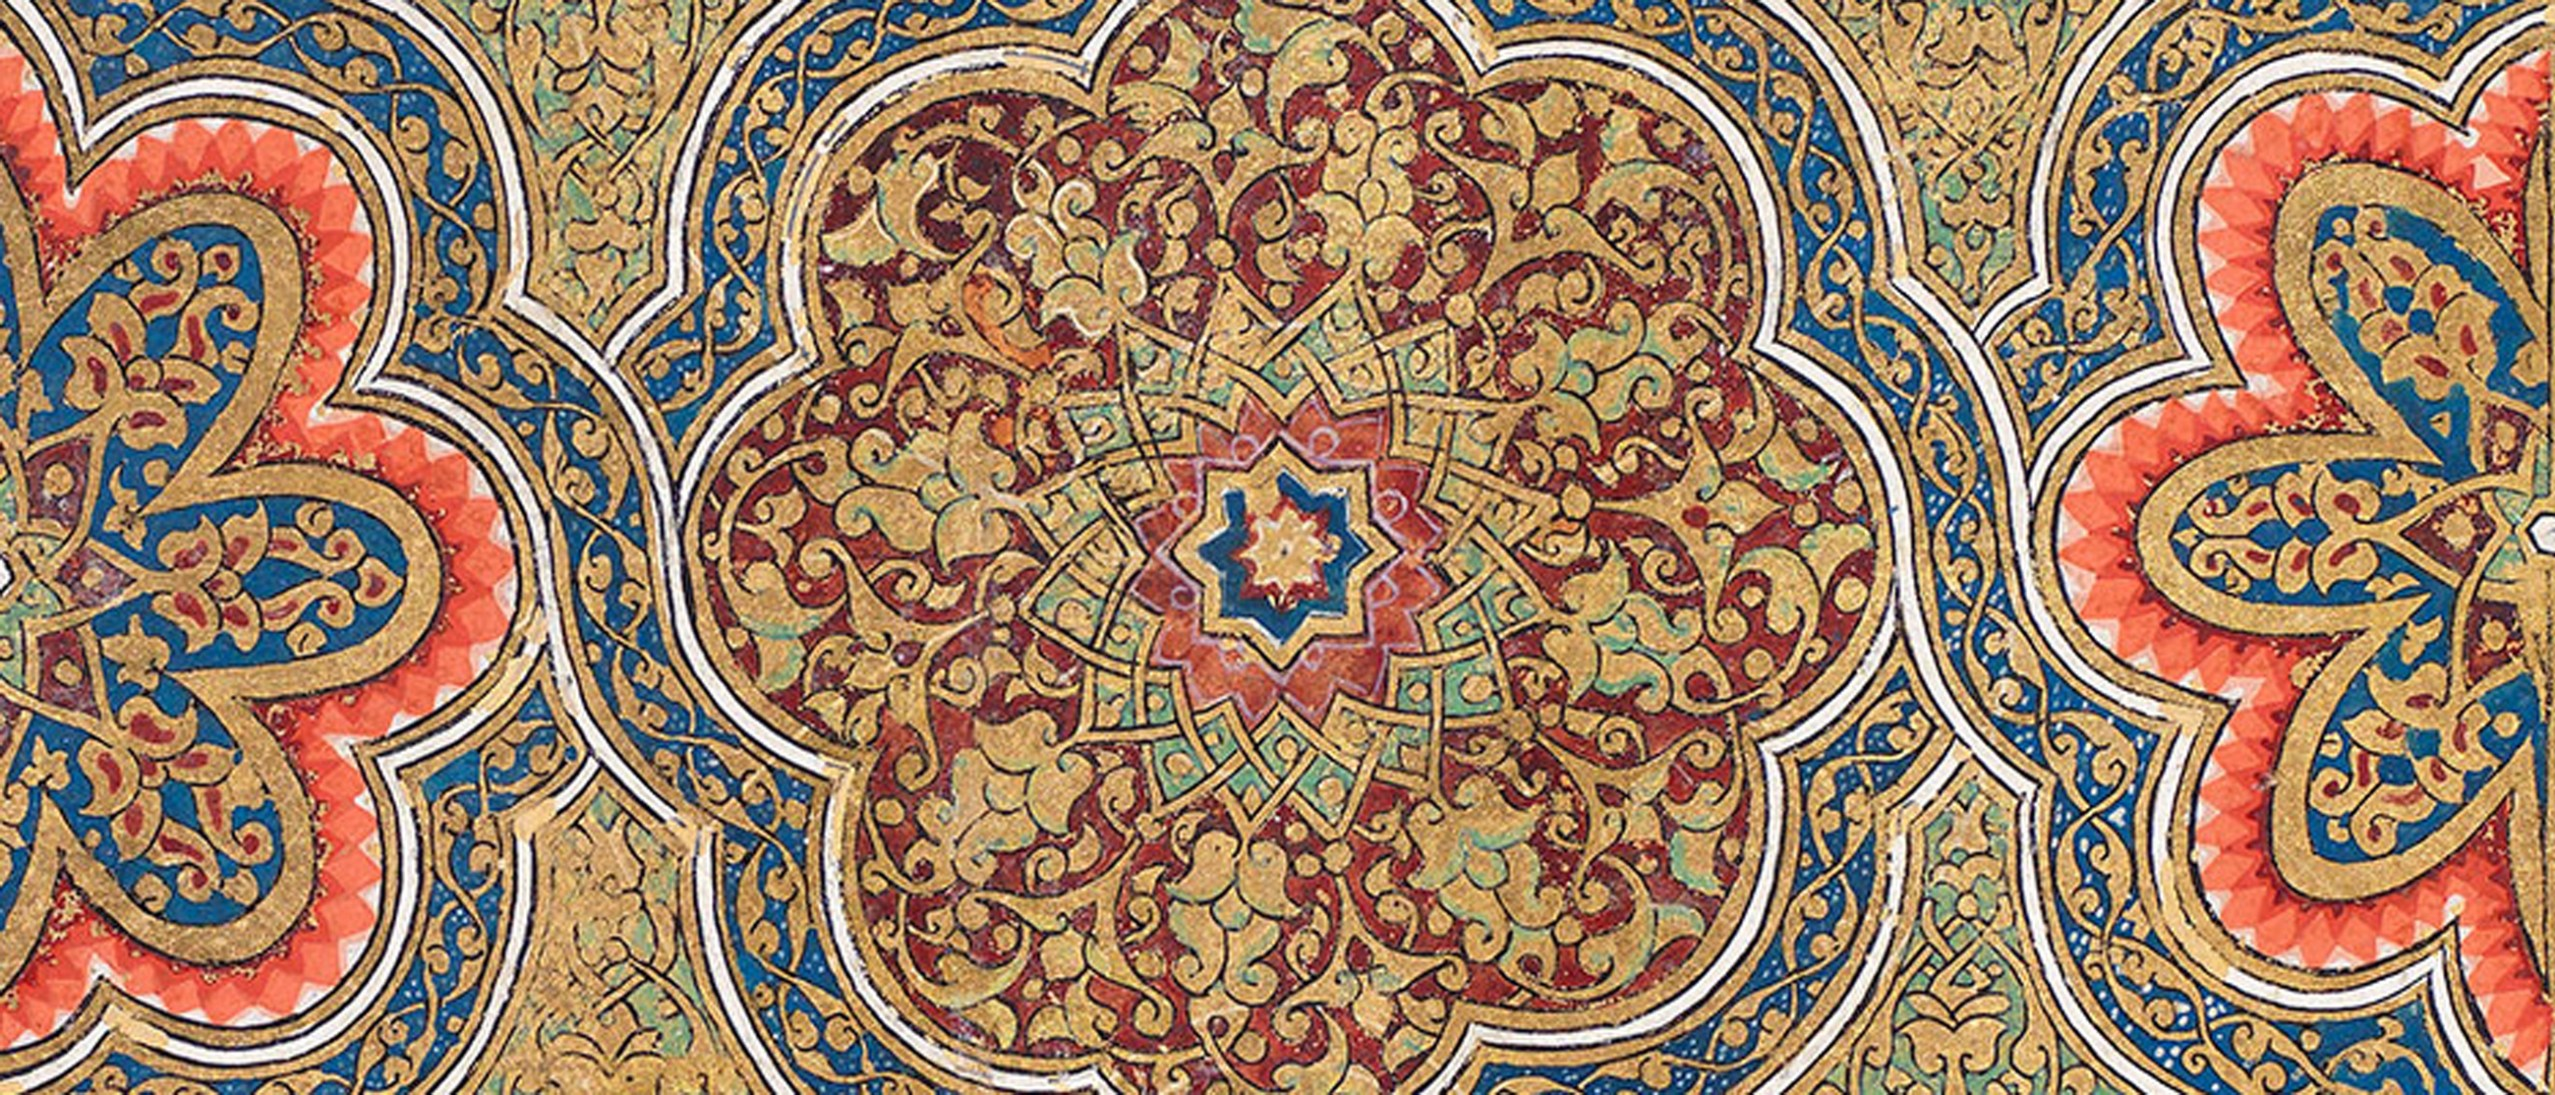 Detail image, Sections of a thirty-part Qur'an; Copied by Ali al-Husayni; Iraq, Mosul, Il-Khanid period, November 1310 (AH Rajab 710); Gold, color, and ink on paper; Transferred from the mosque of Rüstem Pasha to the Museum on January 13, 1914; Museum of Turkish and Islamic Arts, TIEM 540